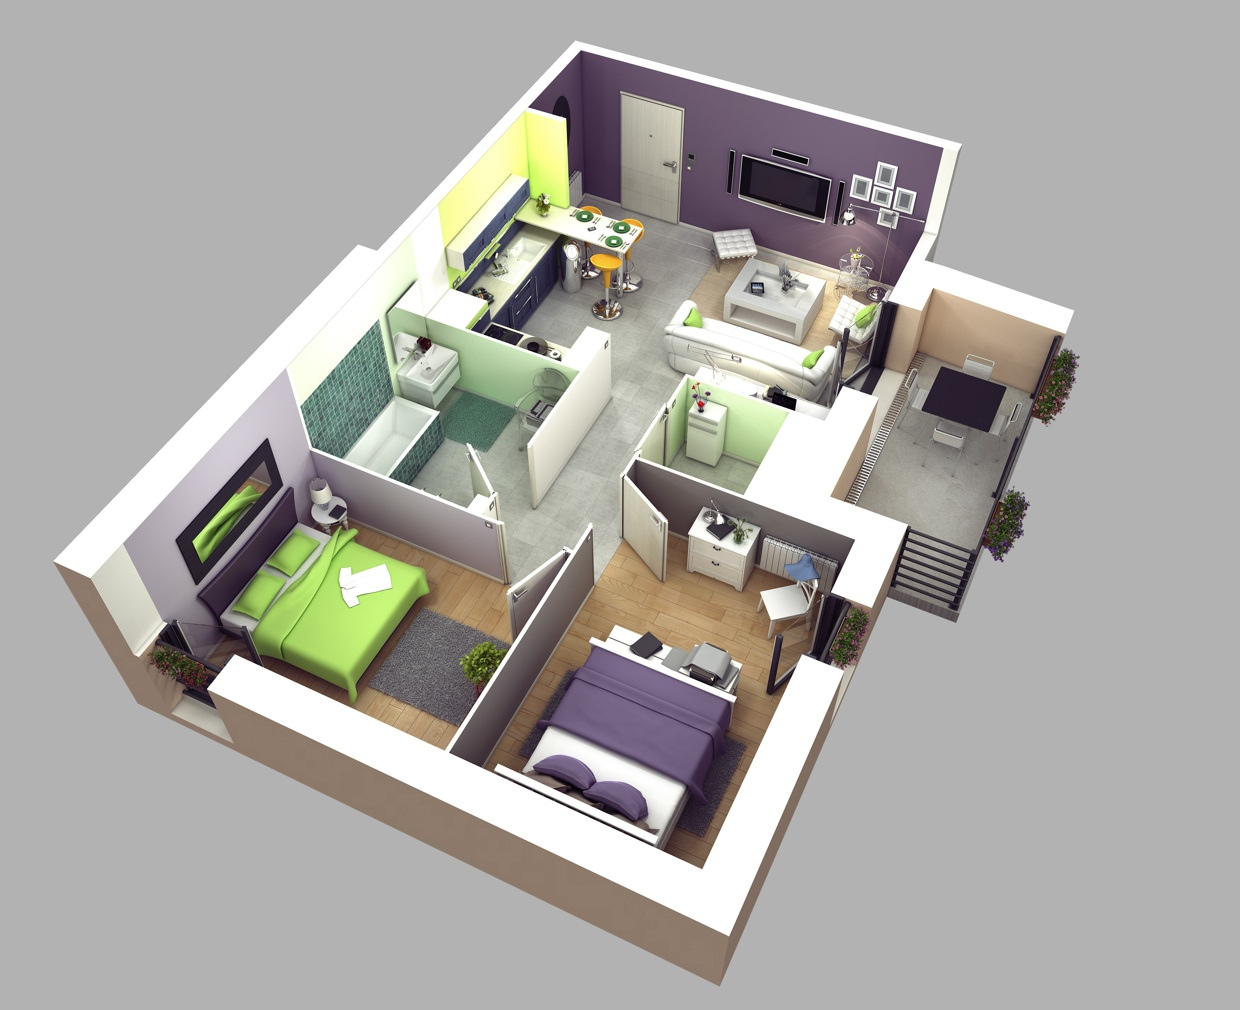 Apartment Room Plan 2 bedroom apartment/house plans